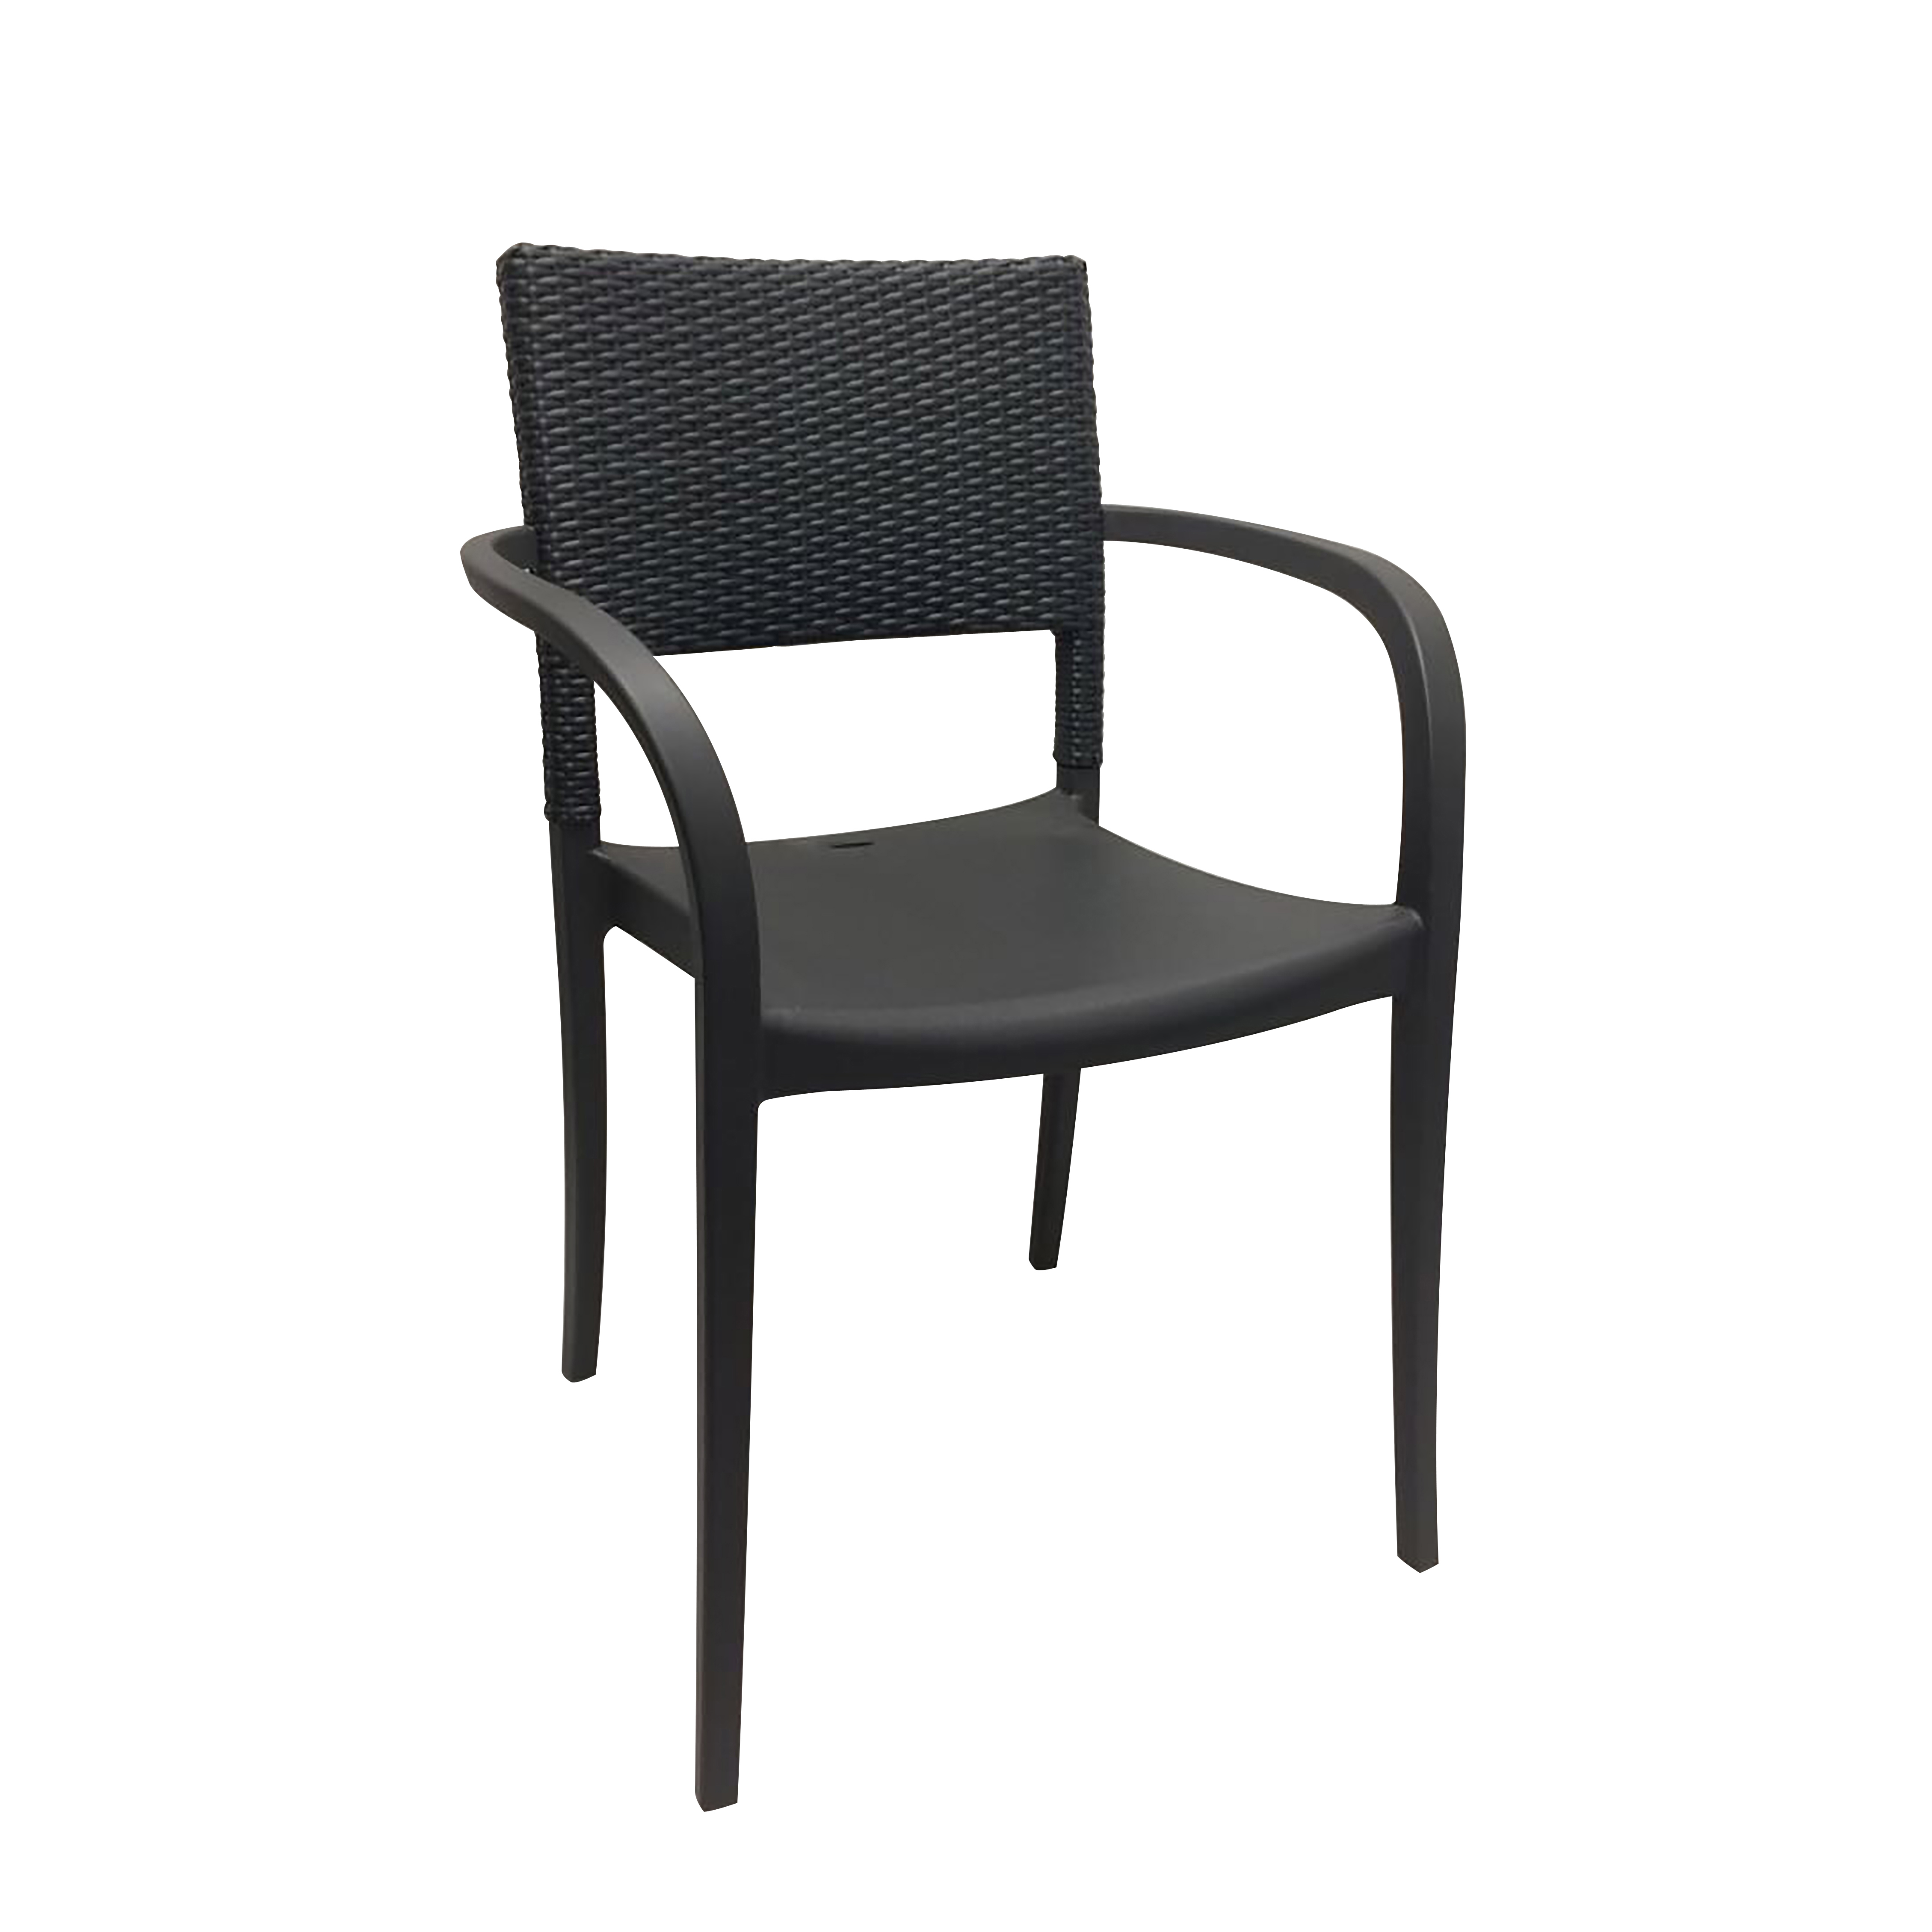 Grosfillex US986002 chair, armchair, stacking, outdoor